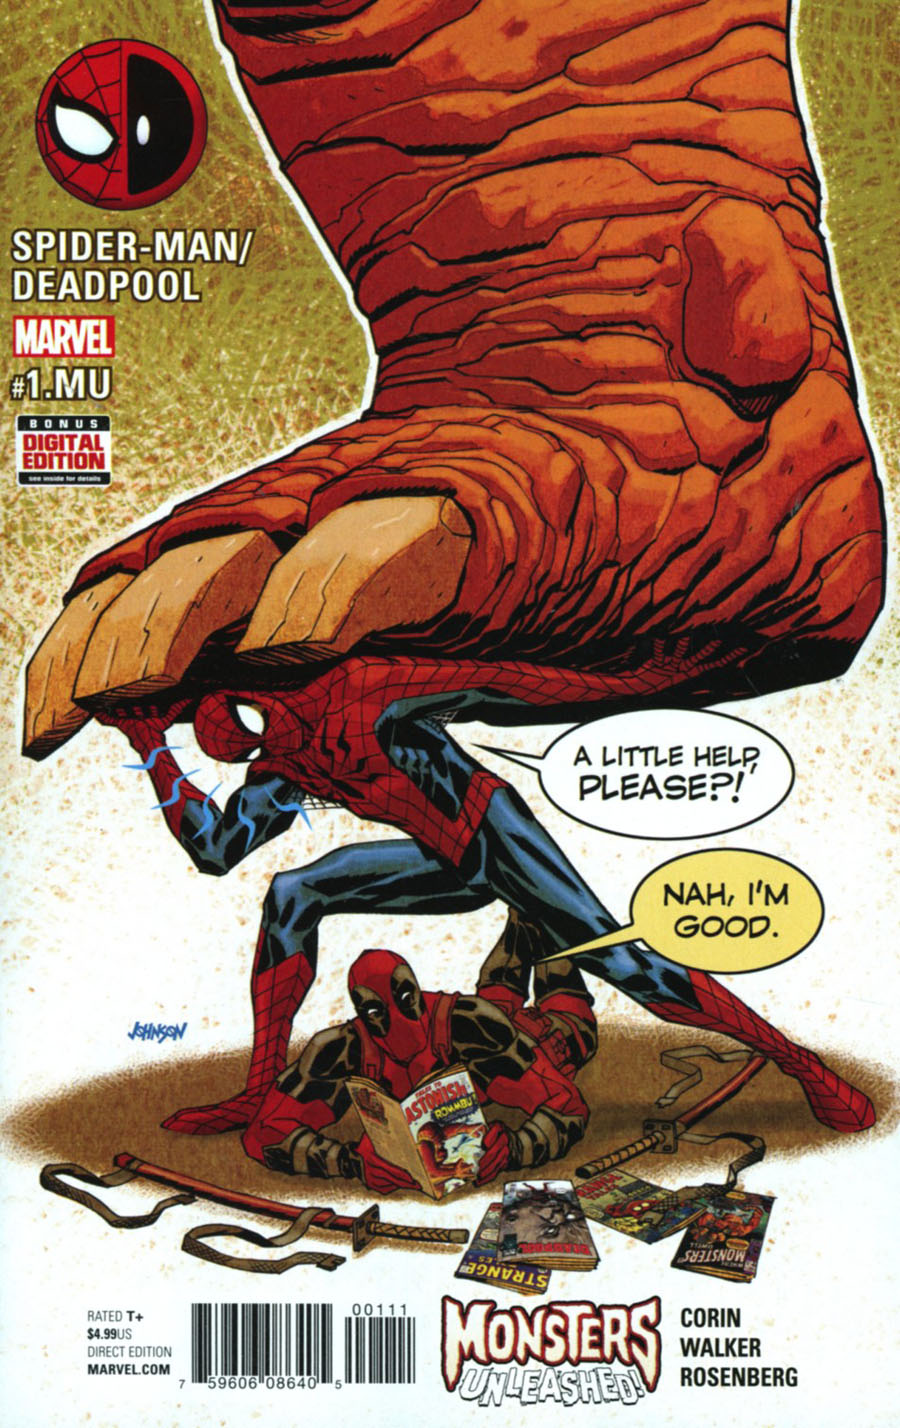 Spider-Man Deadpool #1 MU Cover A Regular Dave Johson Cover (Monsters Unleashed Tie-In)